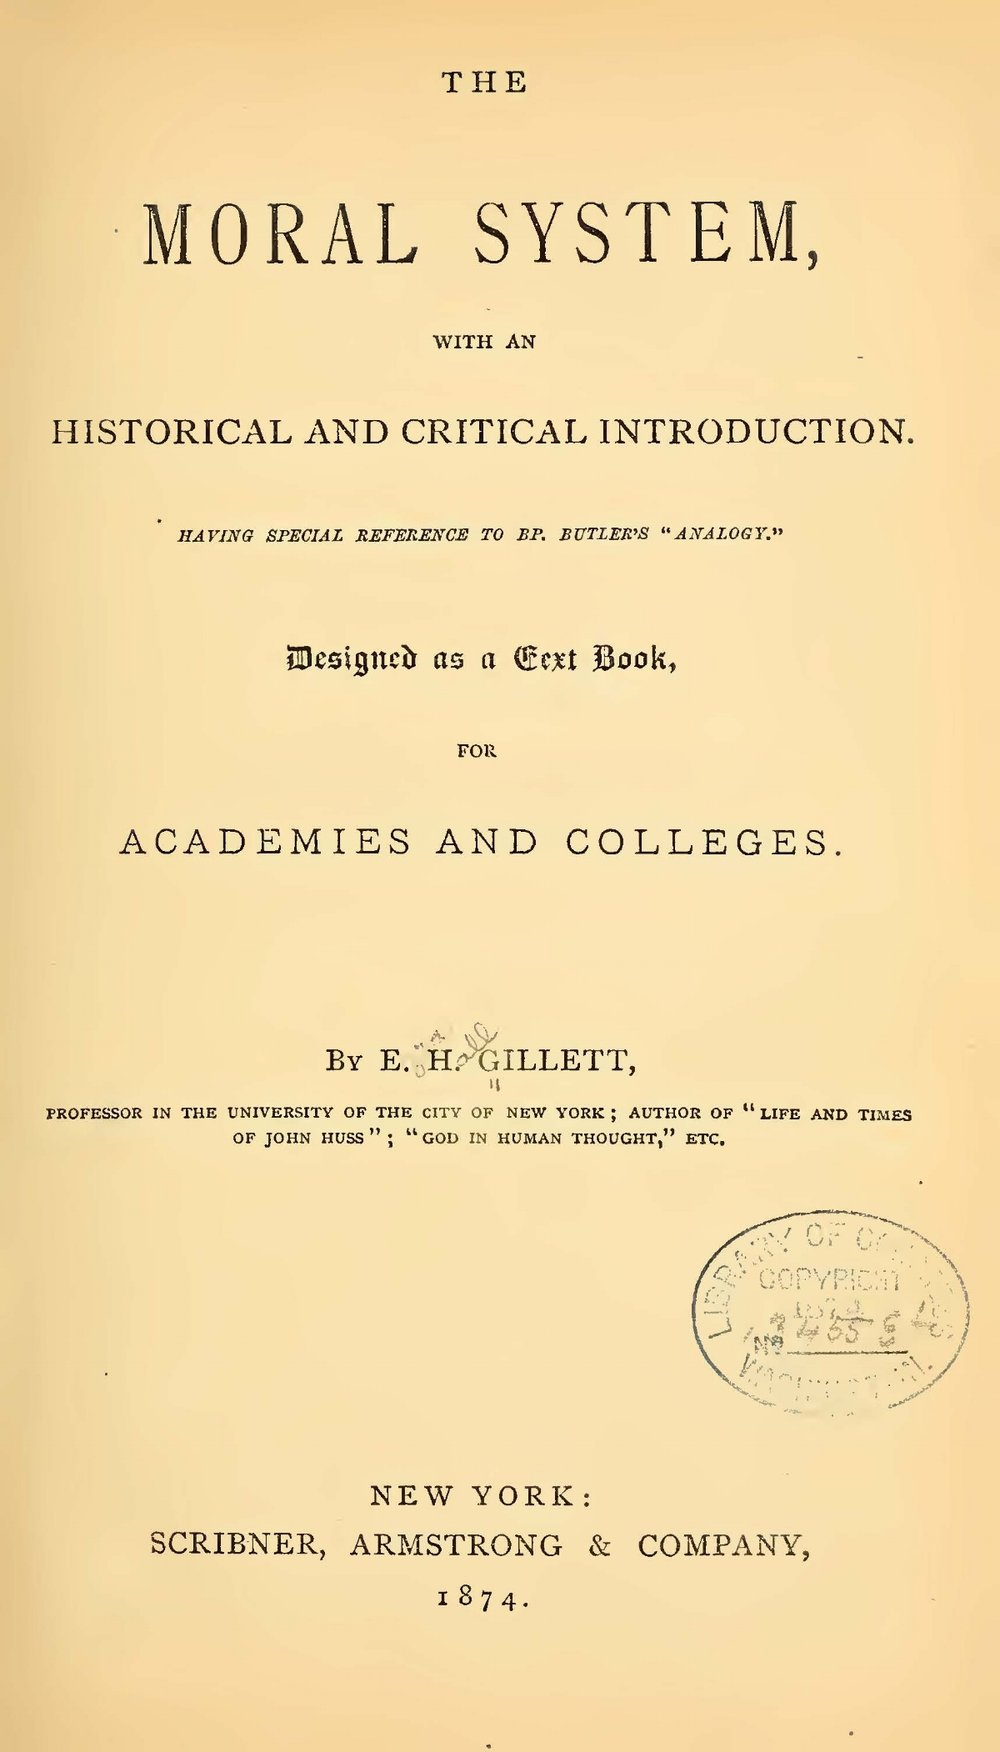 Gillett, Ezra Hall, The Moral System Title Page.jpg